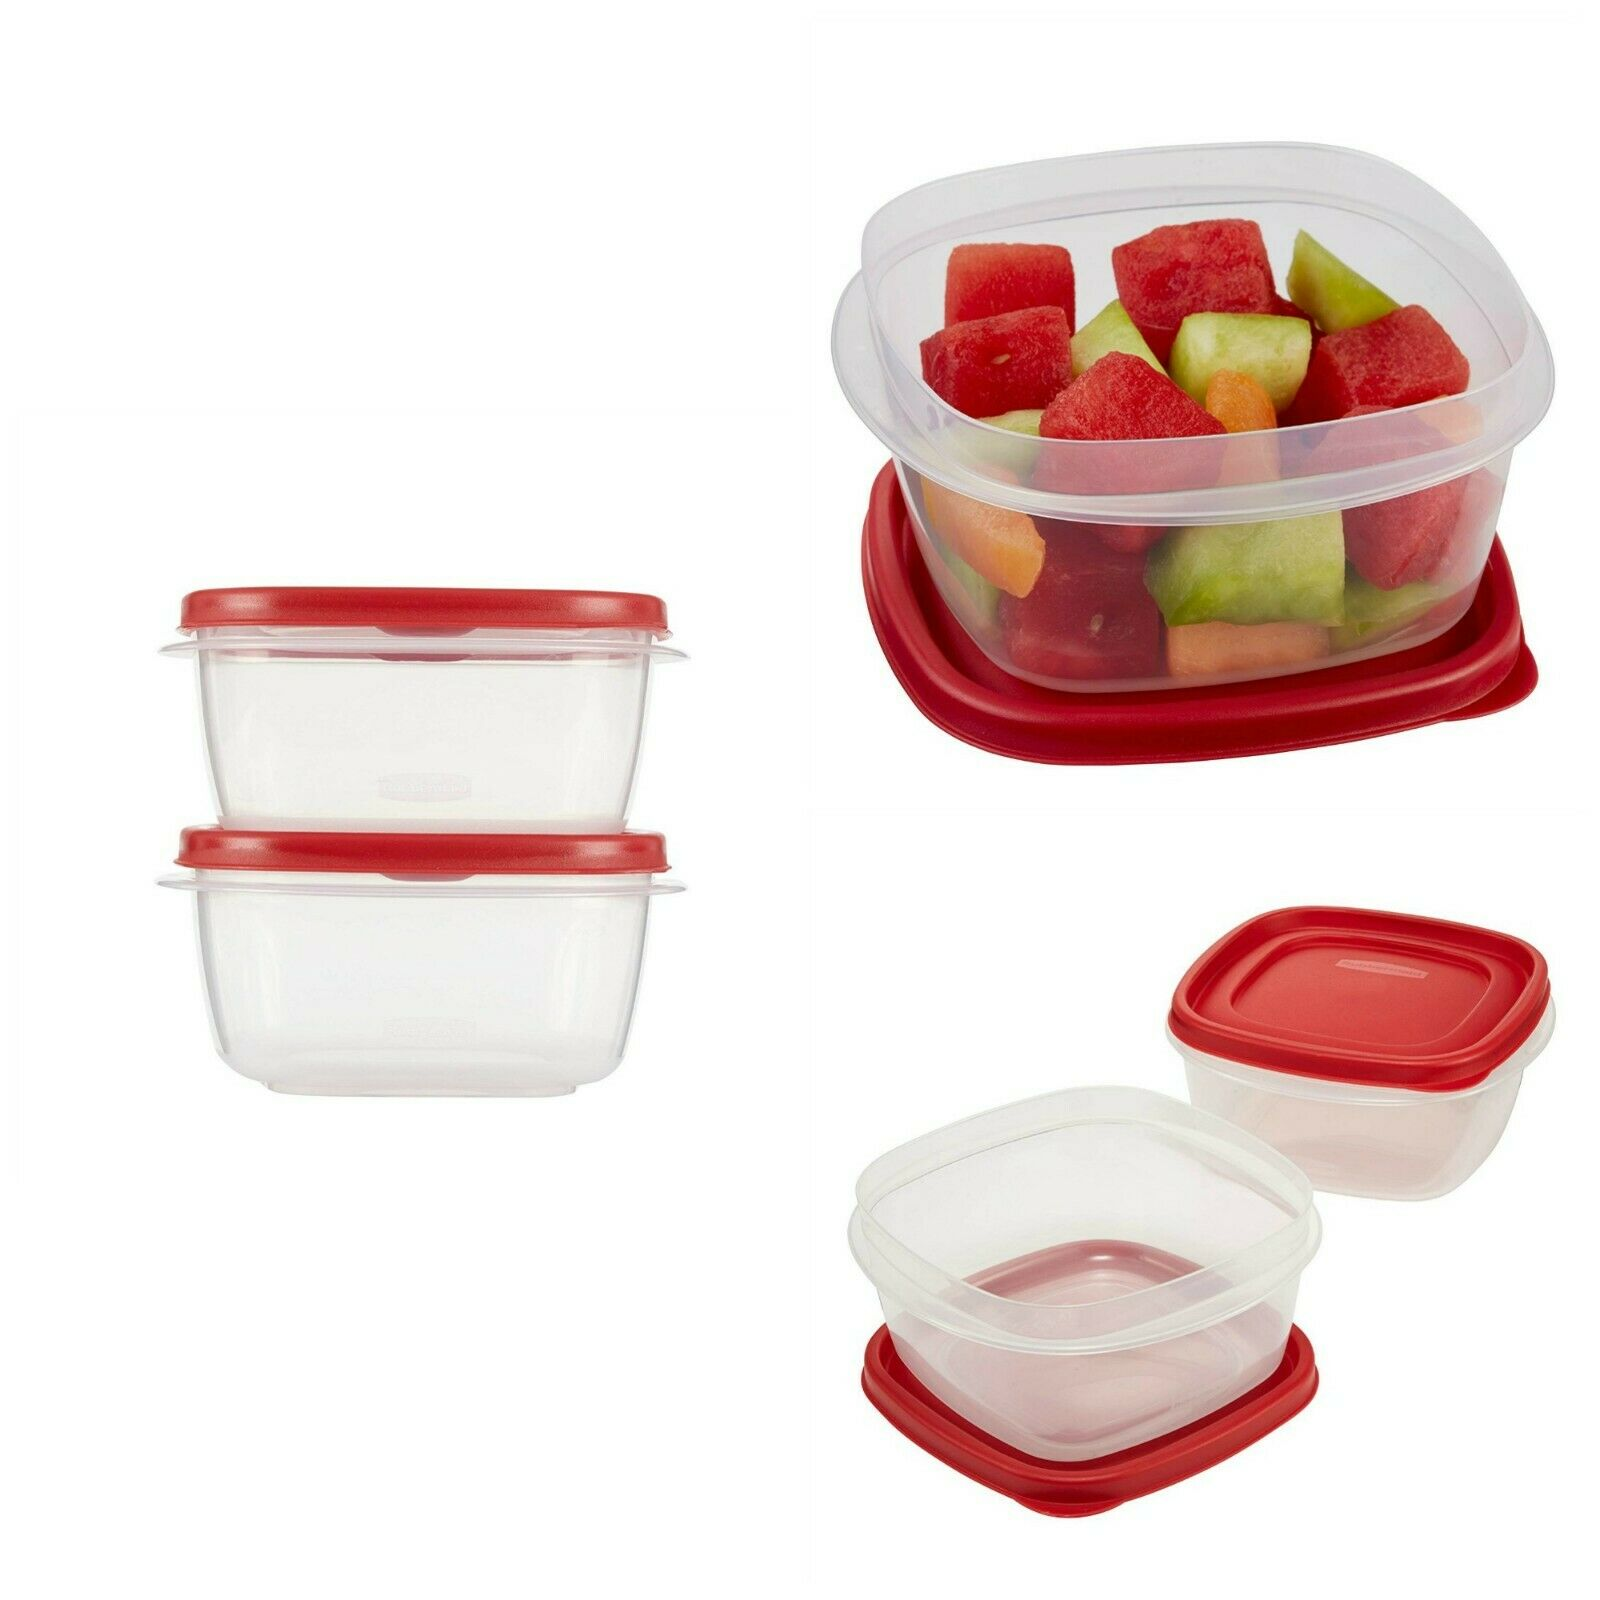 Easy Find Lids Food Storage Container BPA Free Microweavable Containers Kitchen 1